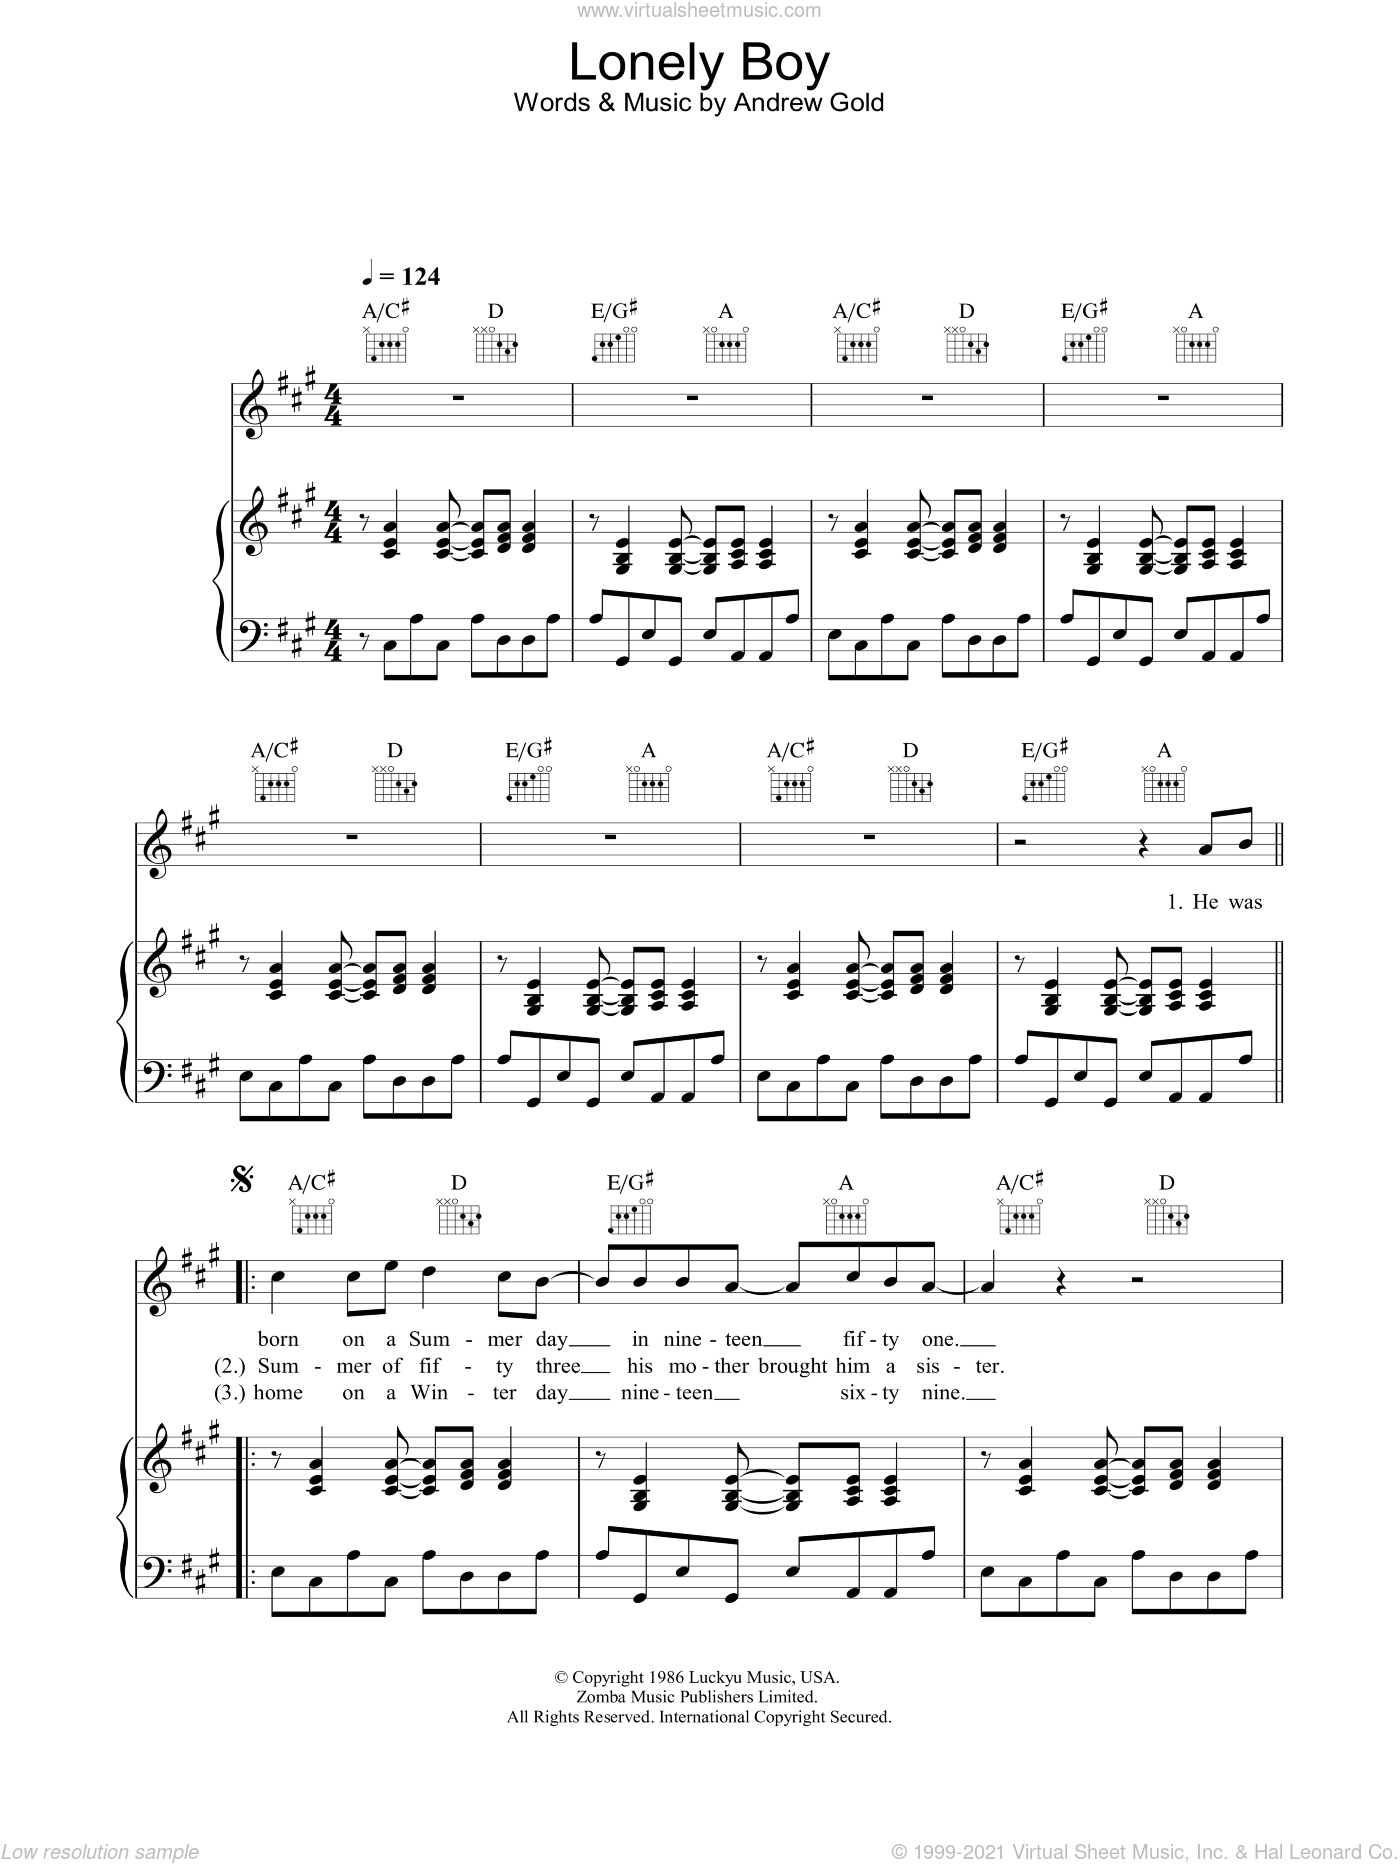 Lonely Boy sheet music for voice, piano or guitar by Andrew Gold, intermediate skill level